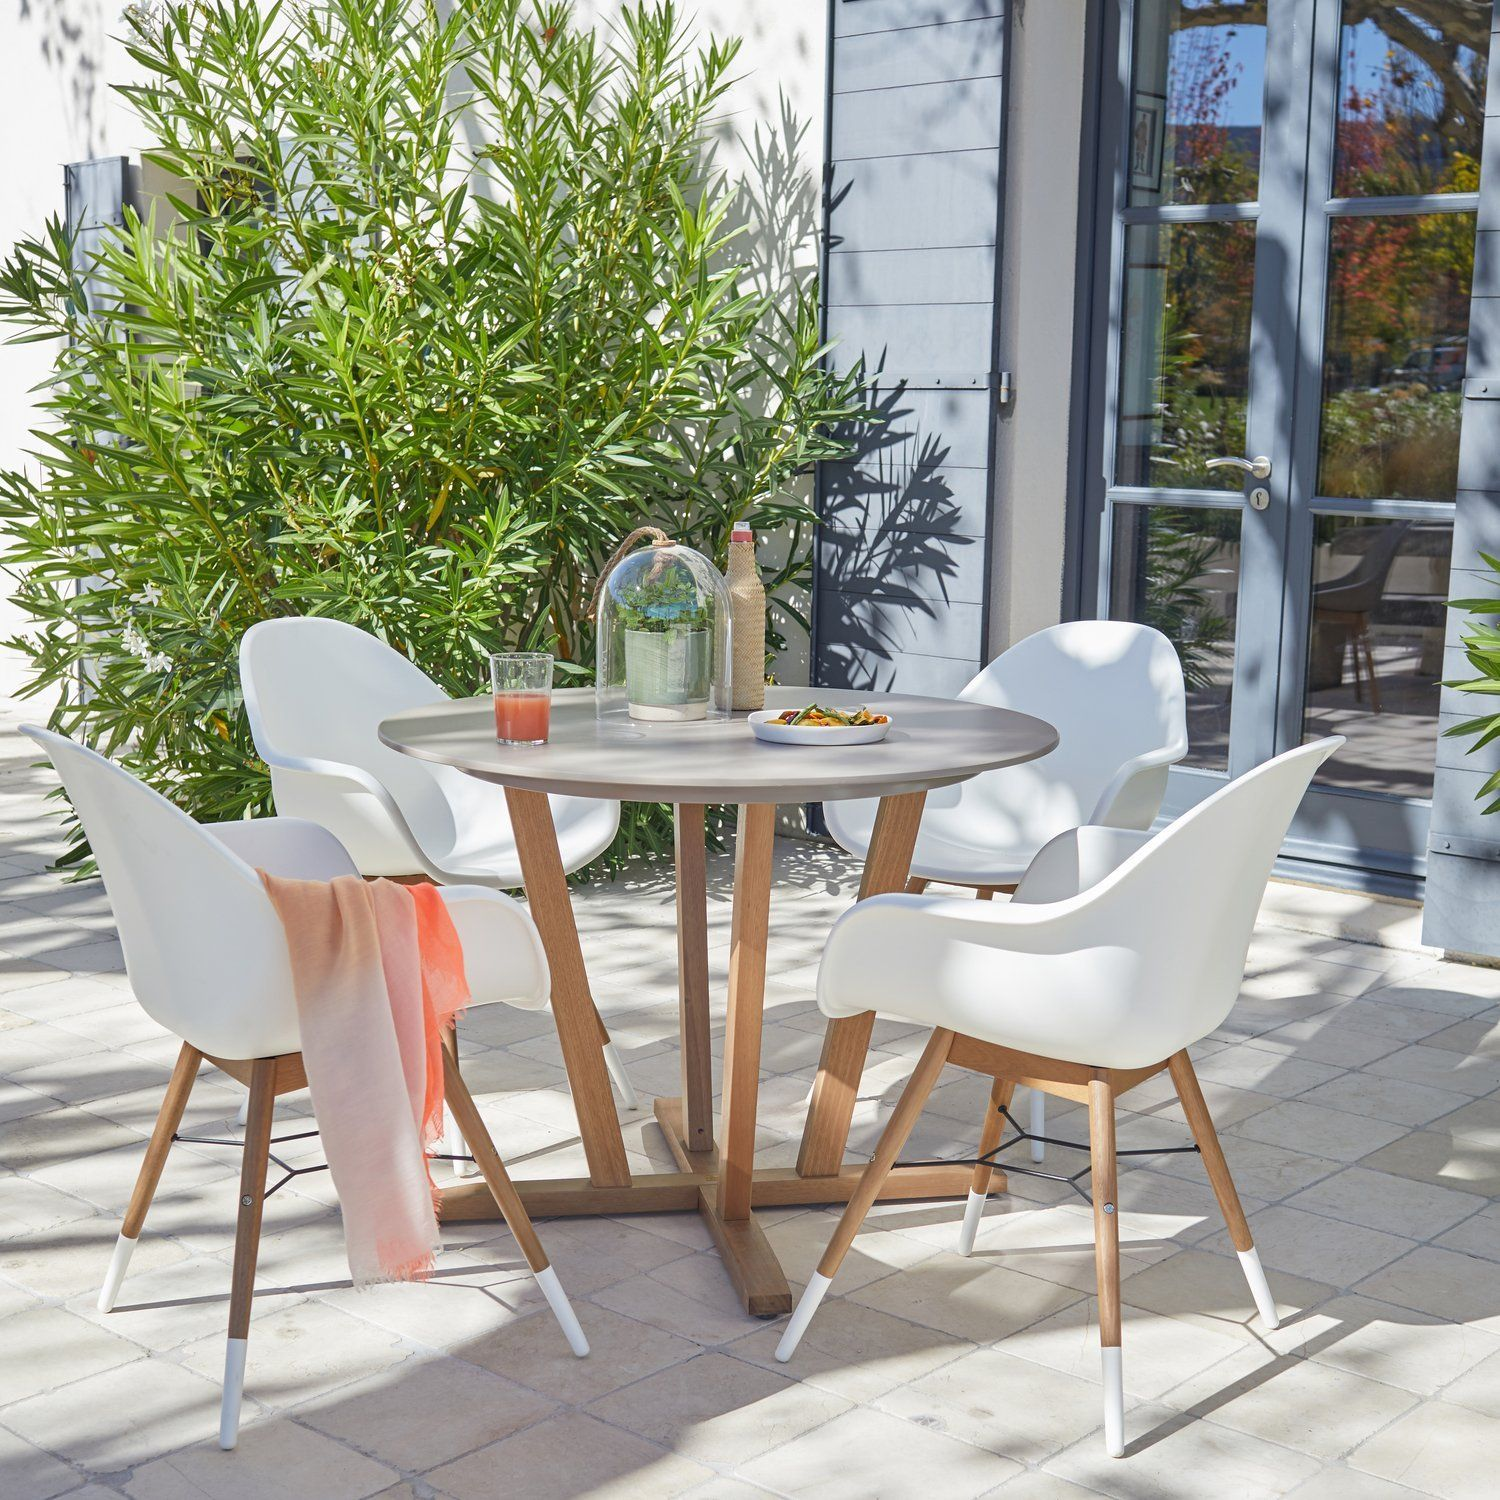 La Nouvelle Collection De Salon De Jardin 2019 Ondedrawer